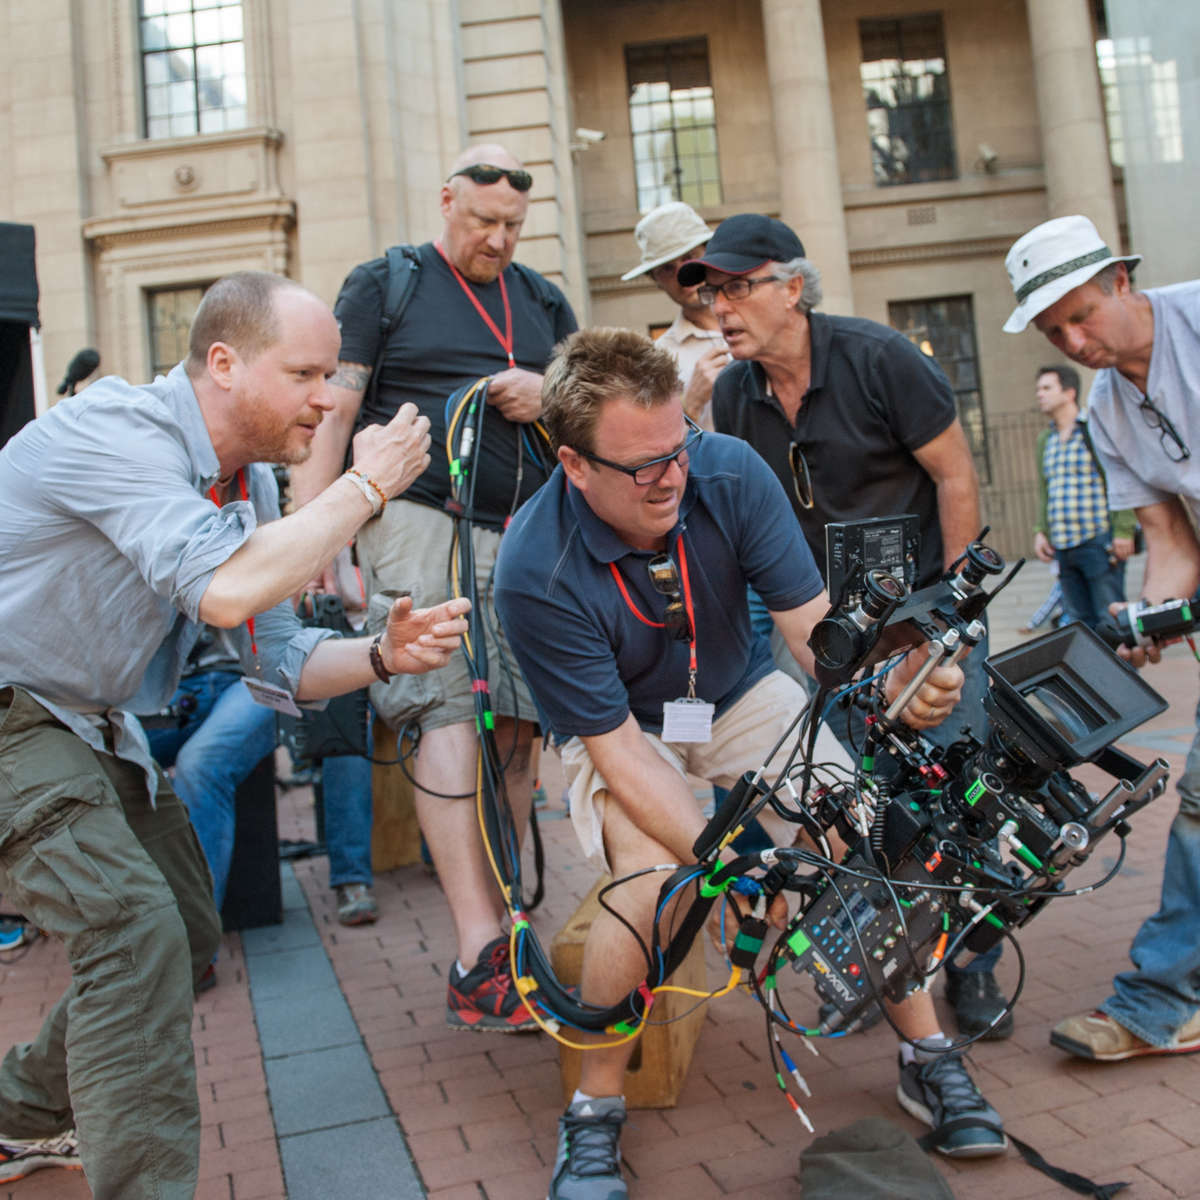 joss-whedon-avengers-age-of-ultron-set-image.jpg